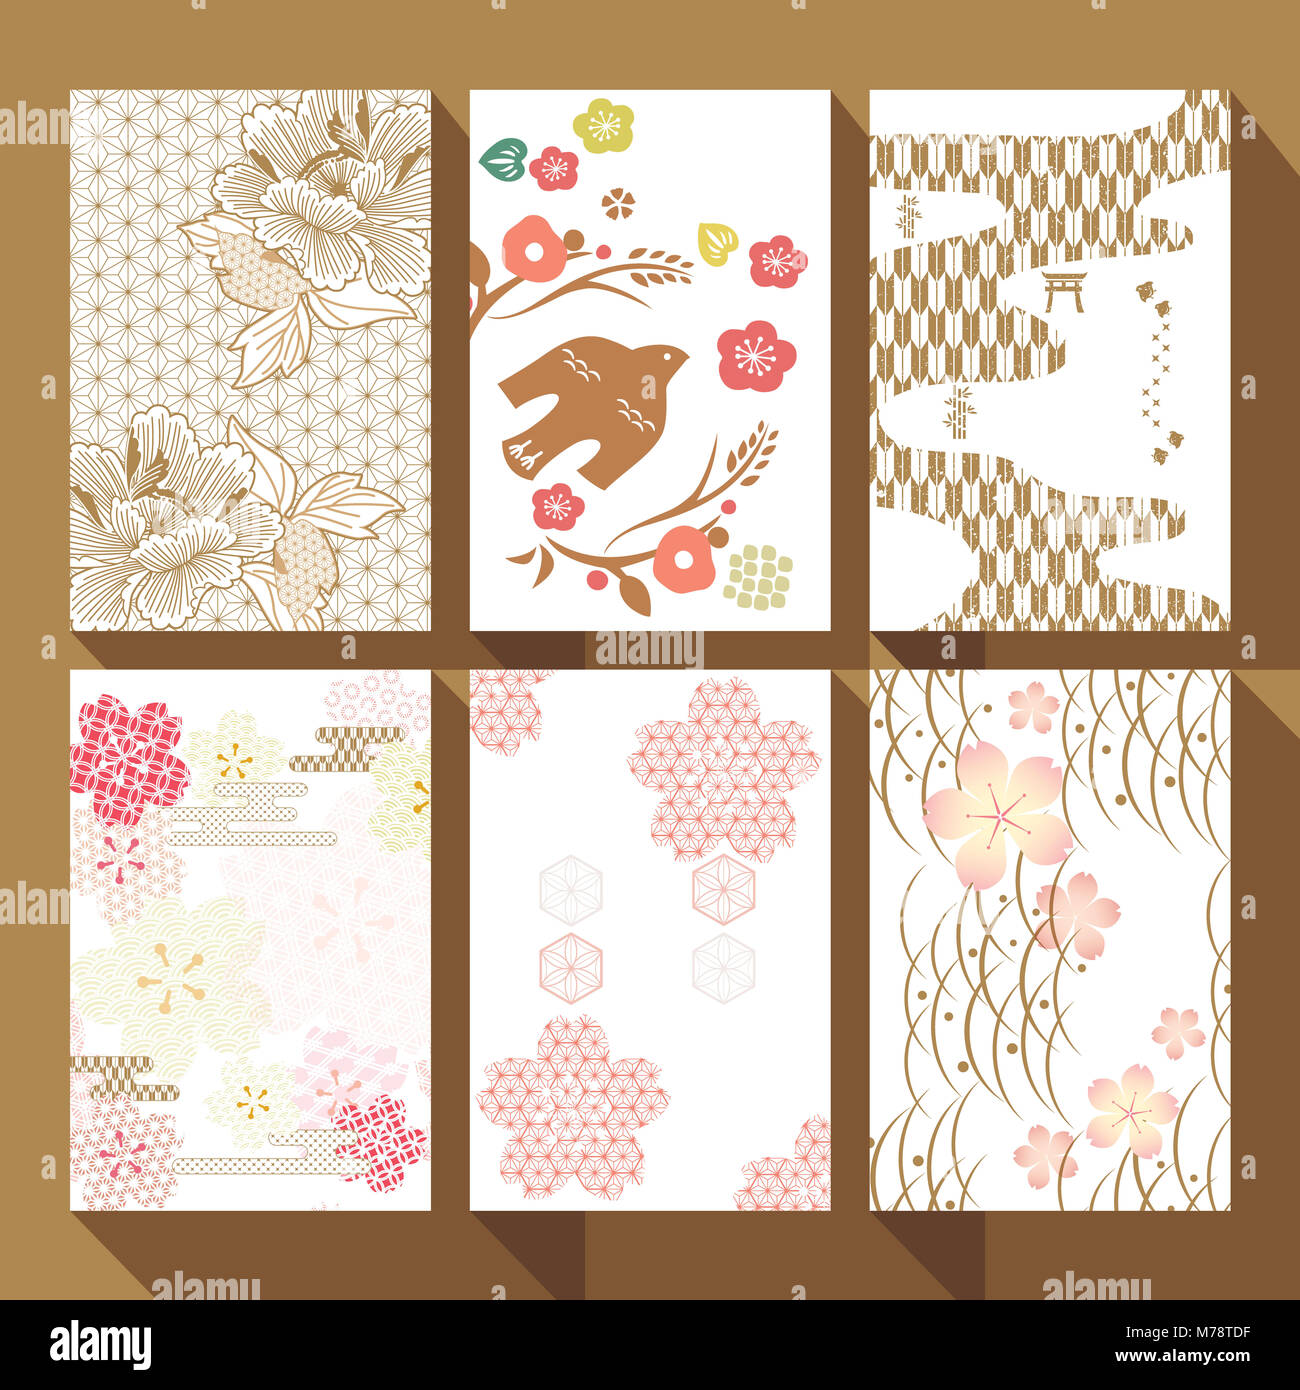 Japanese pattern vector gold geometric background cherry blossom japanese pattern vector gold geometric background cherry blossom flower bird river wave leaves elements invitation card wedding ceremony post stopboris